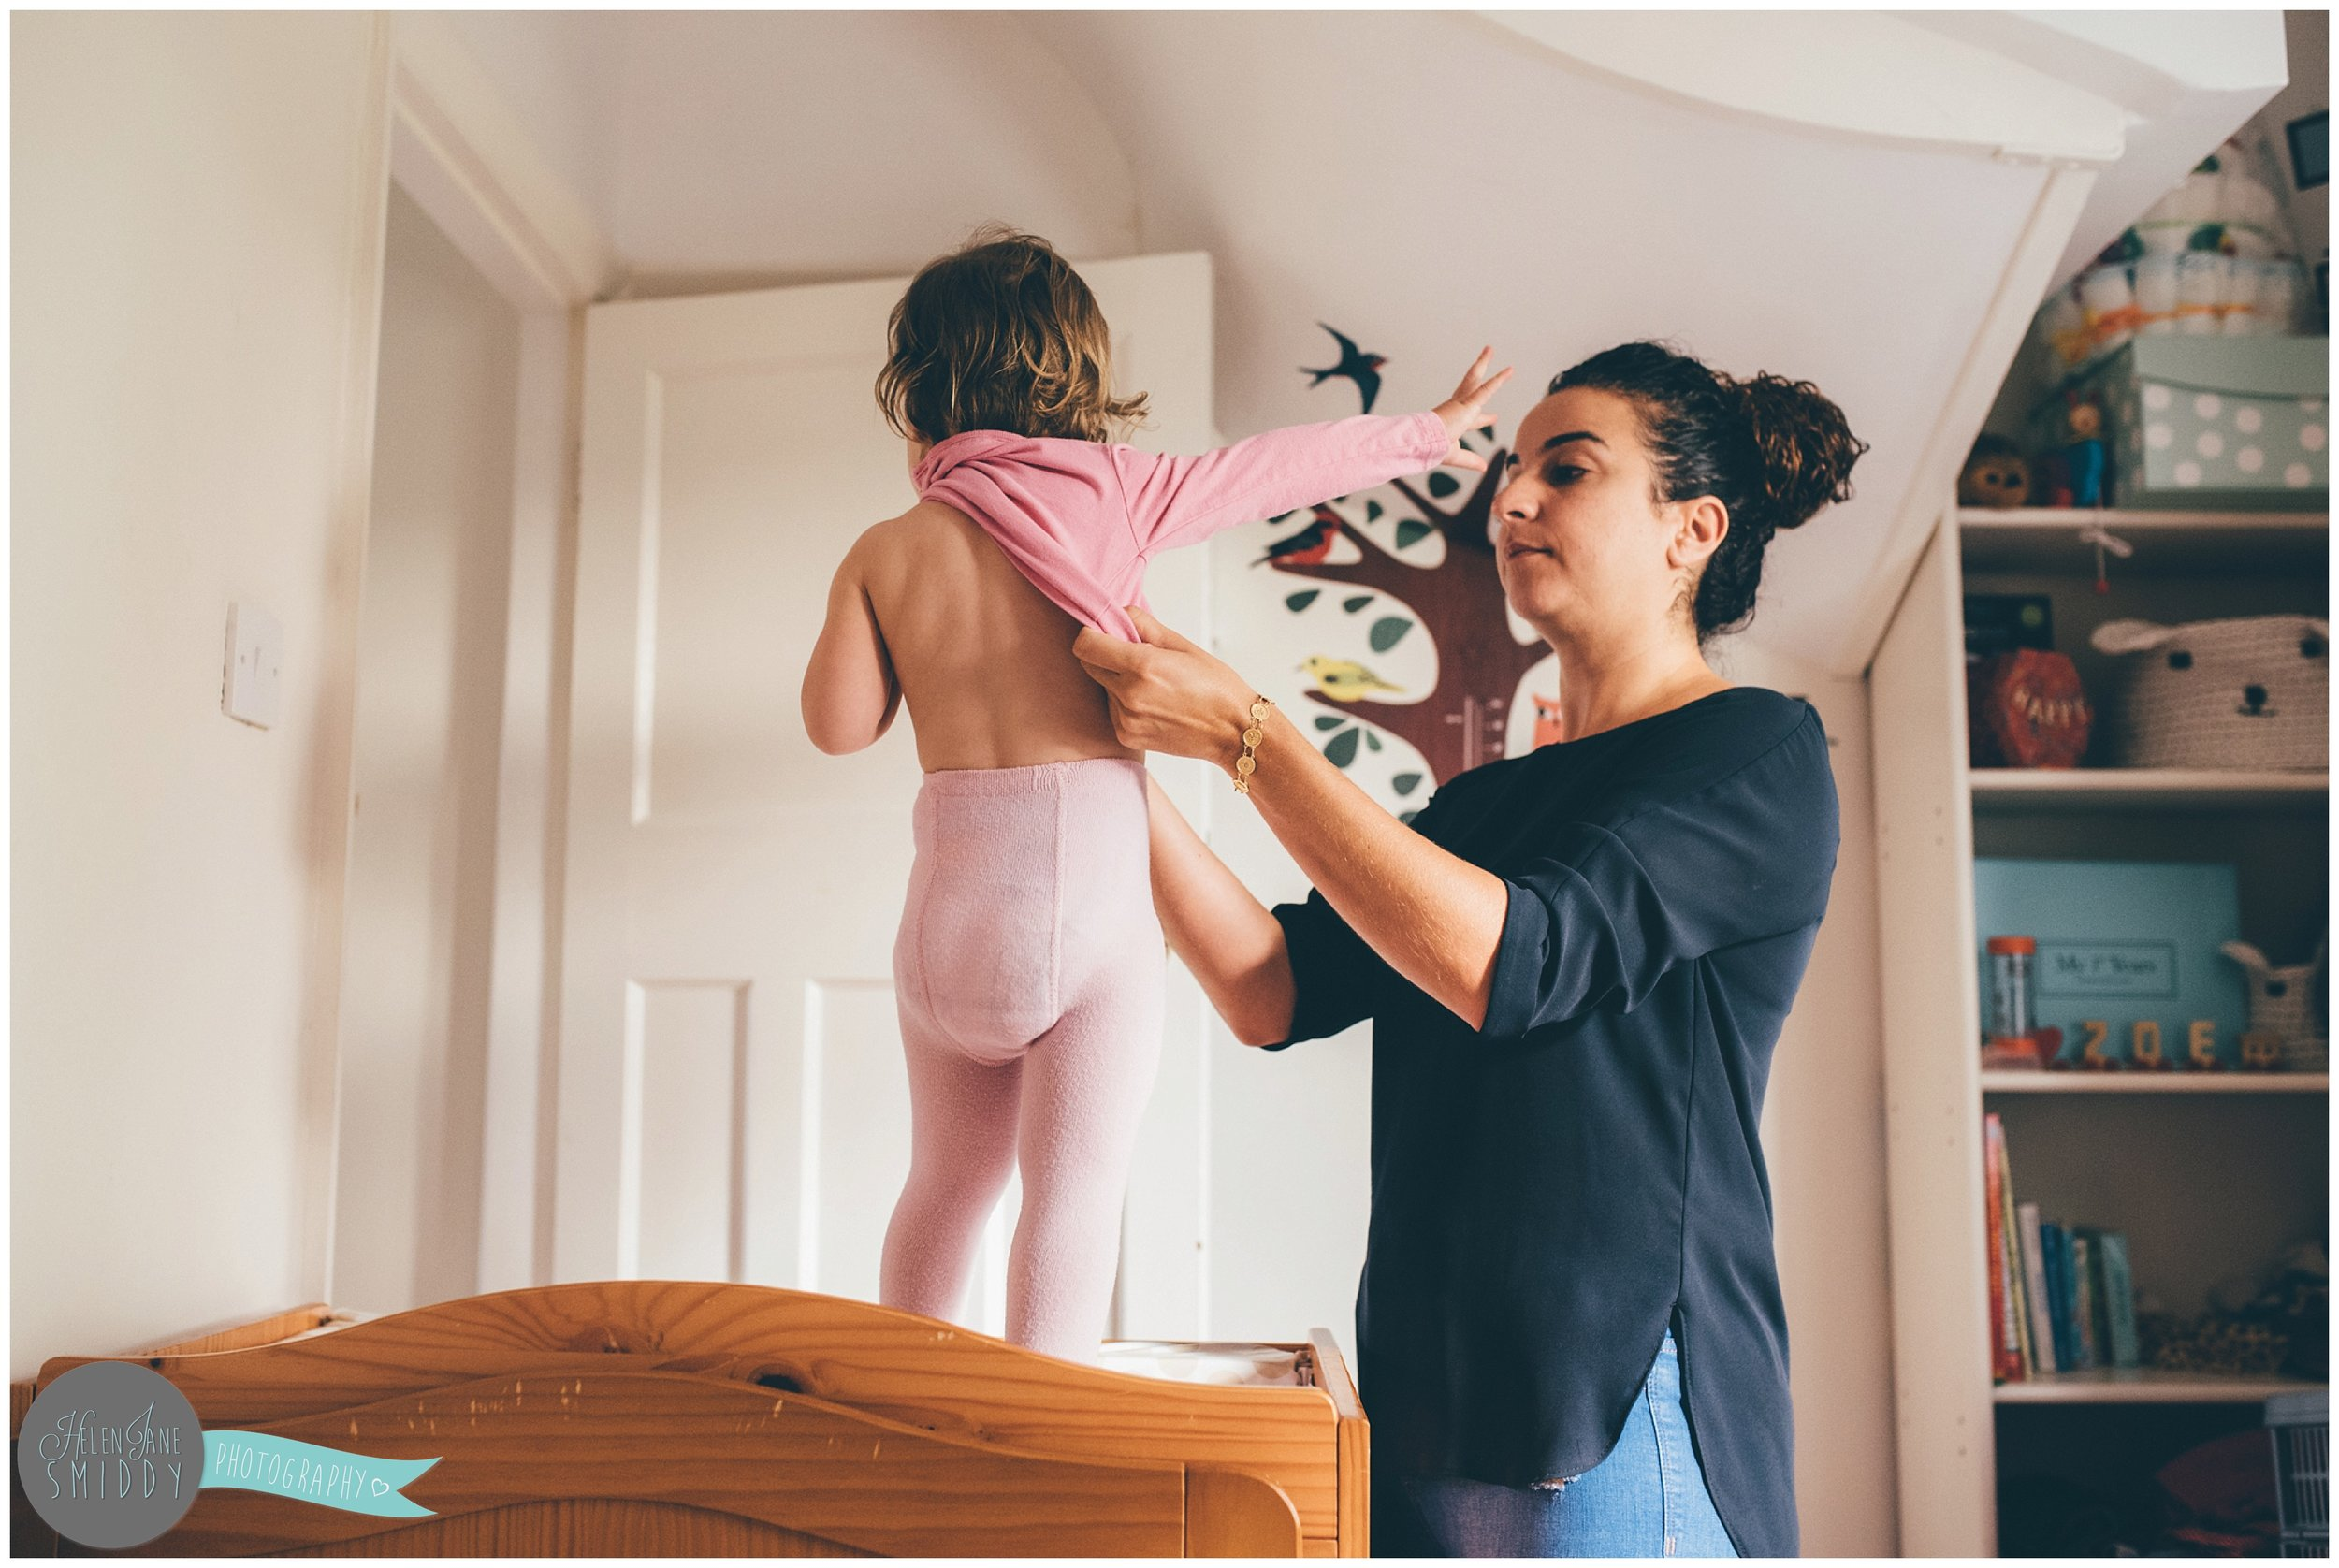 A mummy dresses her daughter in a pretty pink tshirt.